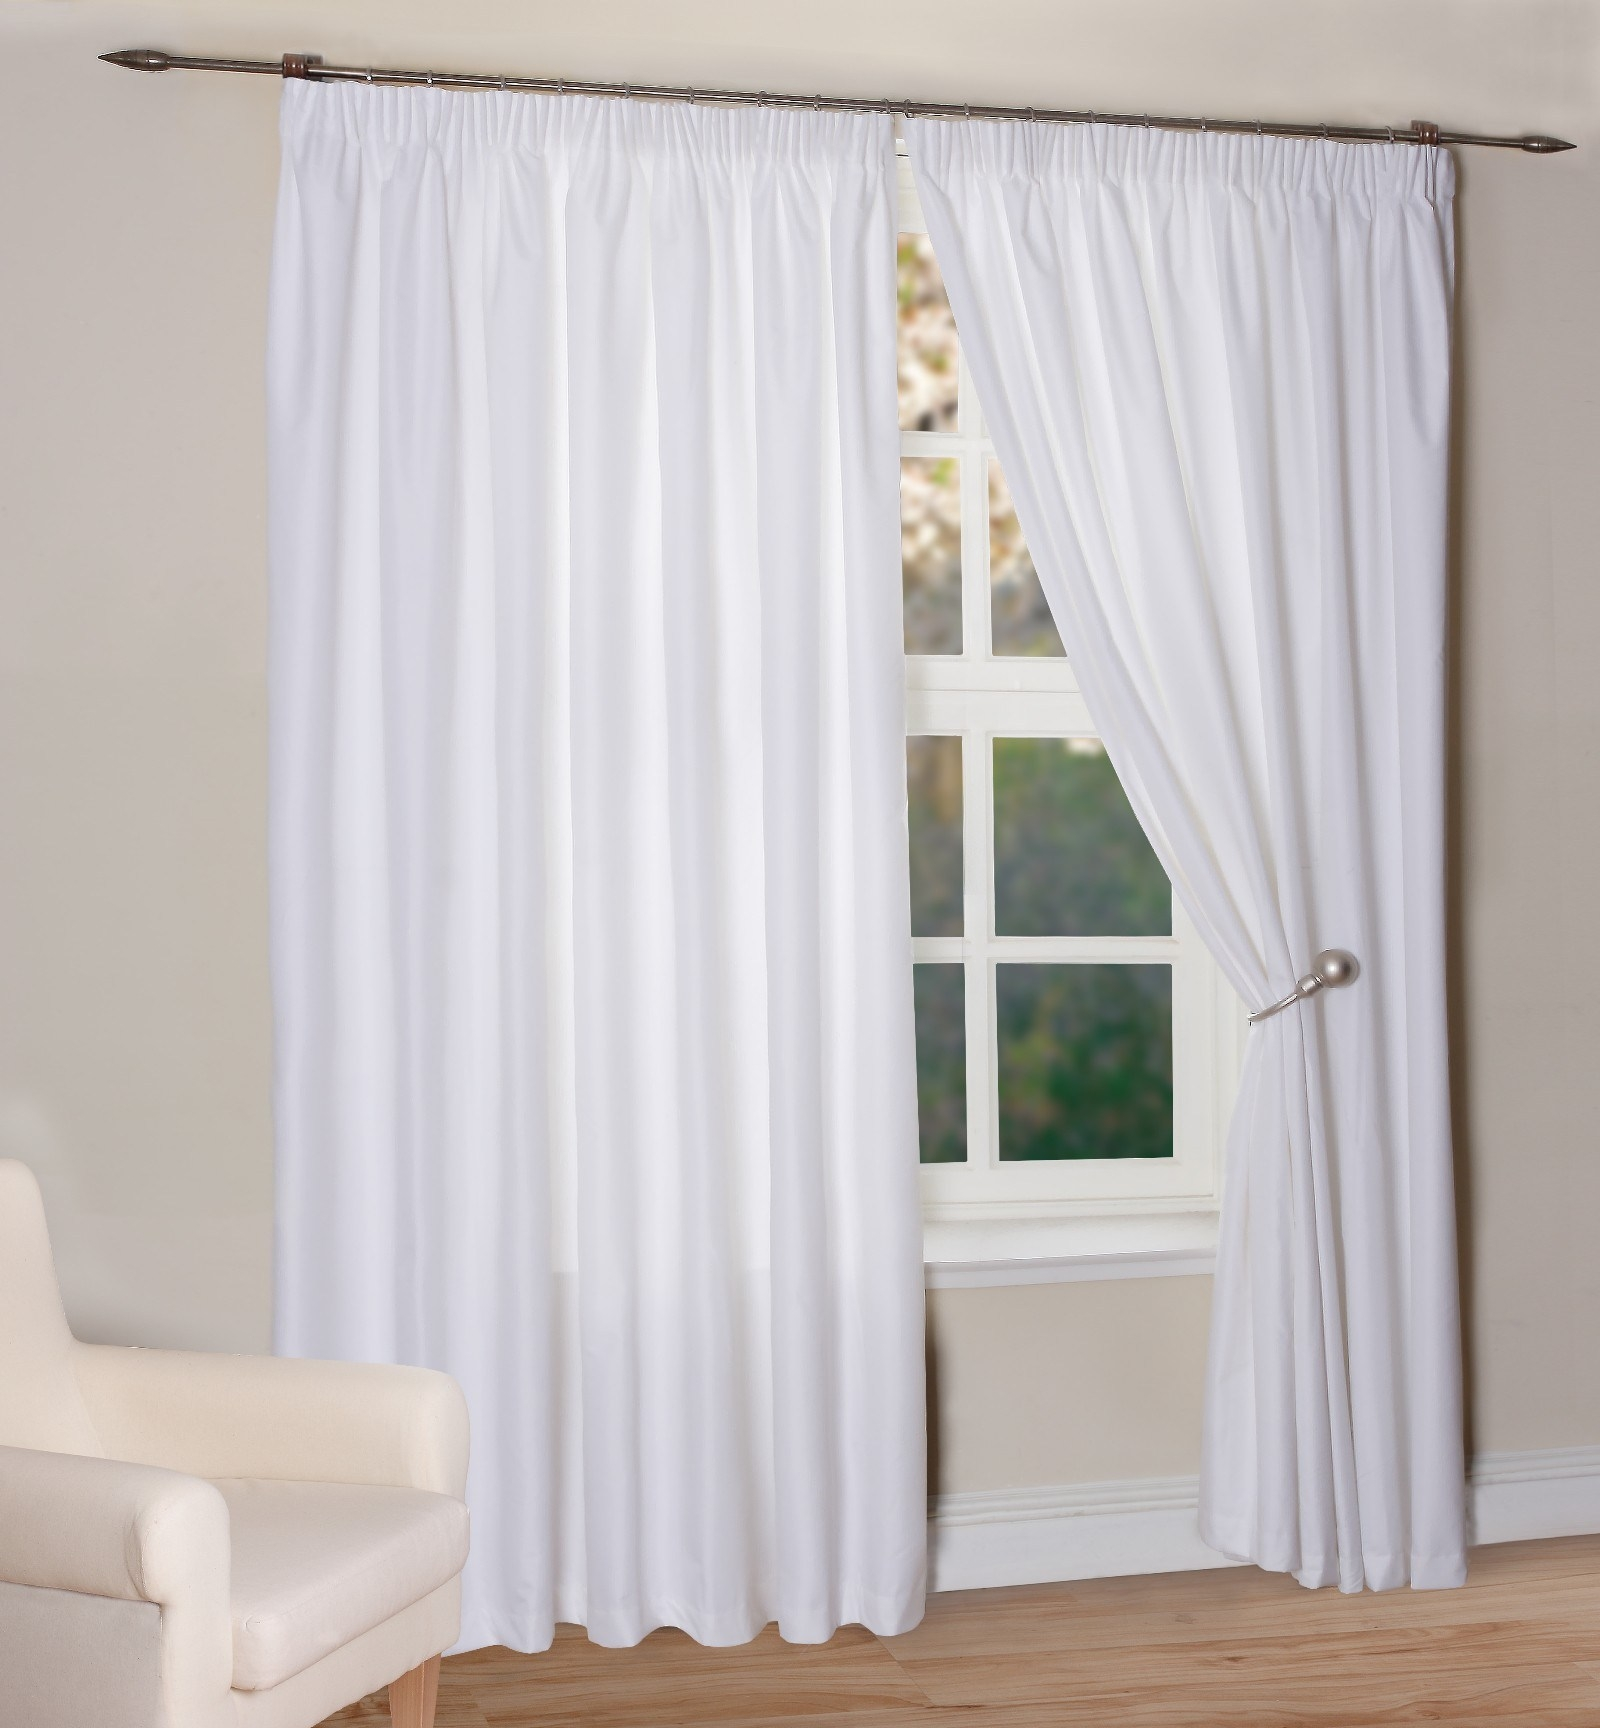 White Curtains With Blackout Lining Inside White Curtains With Blackout Lining (Image 14 of 15)